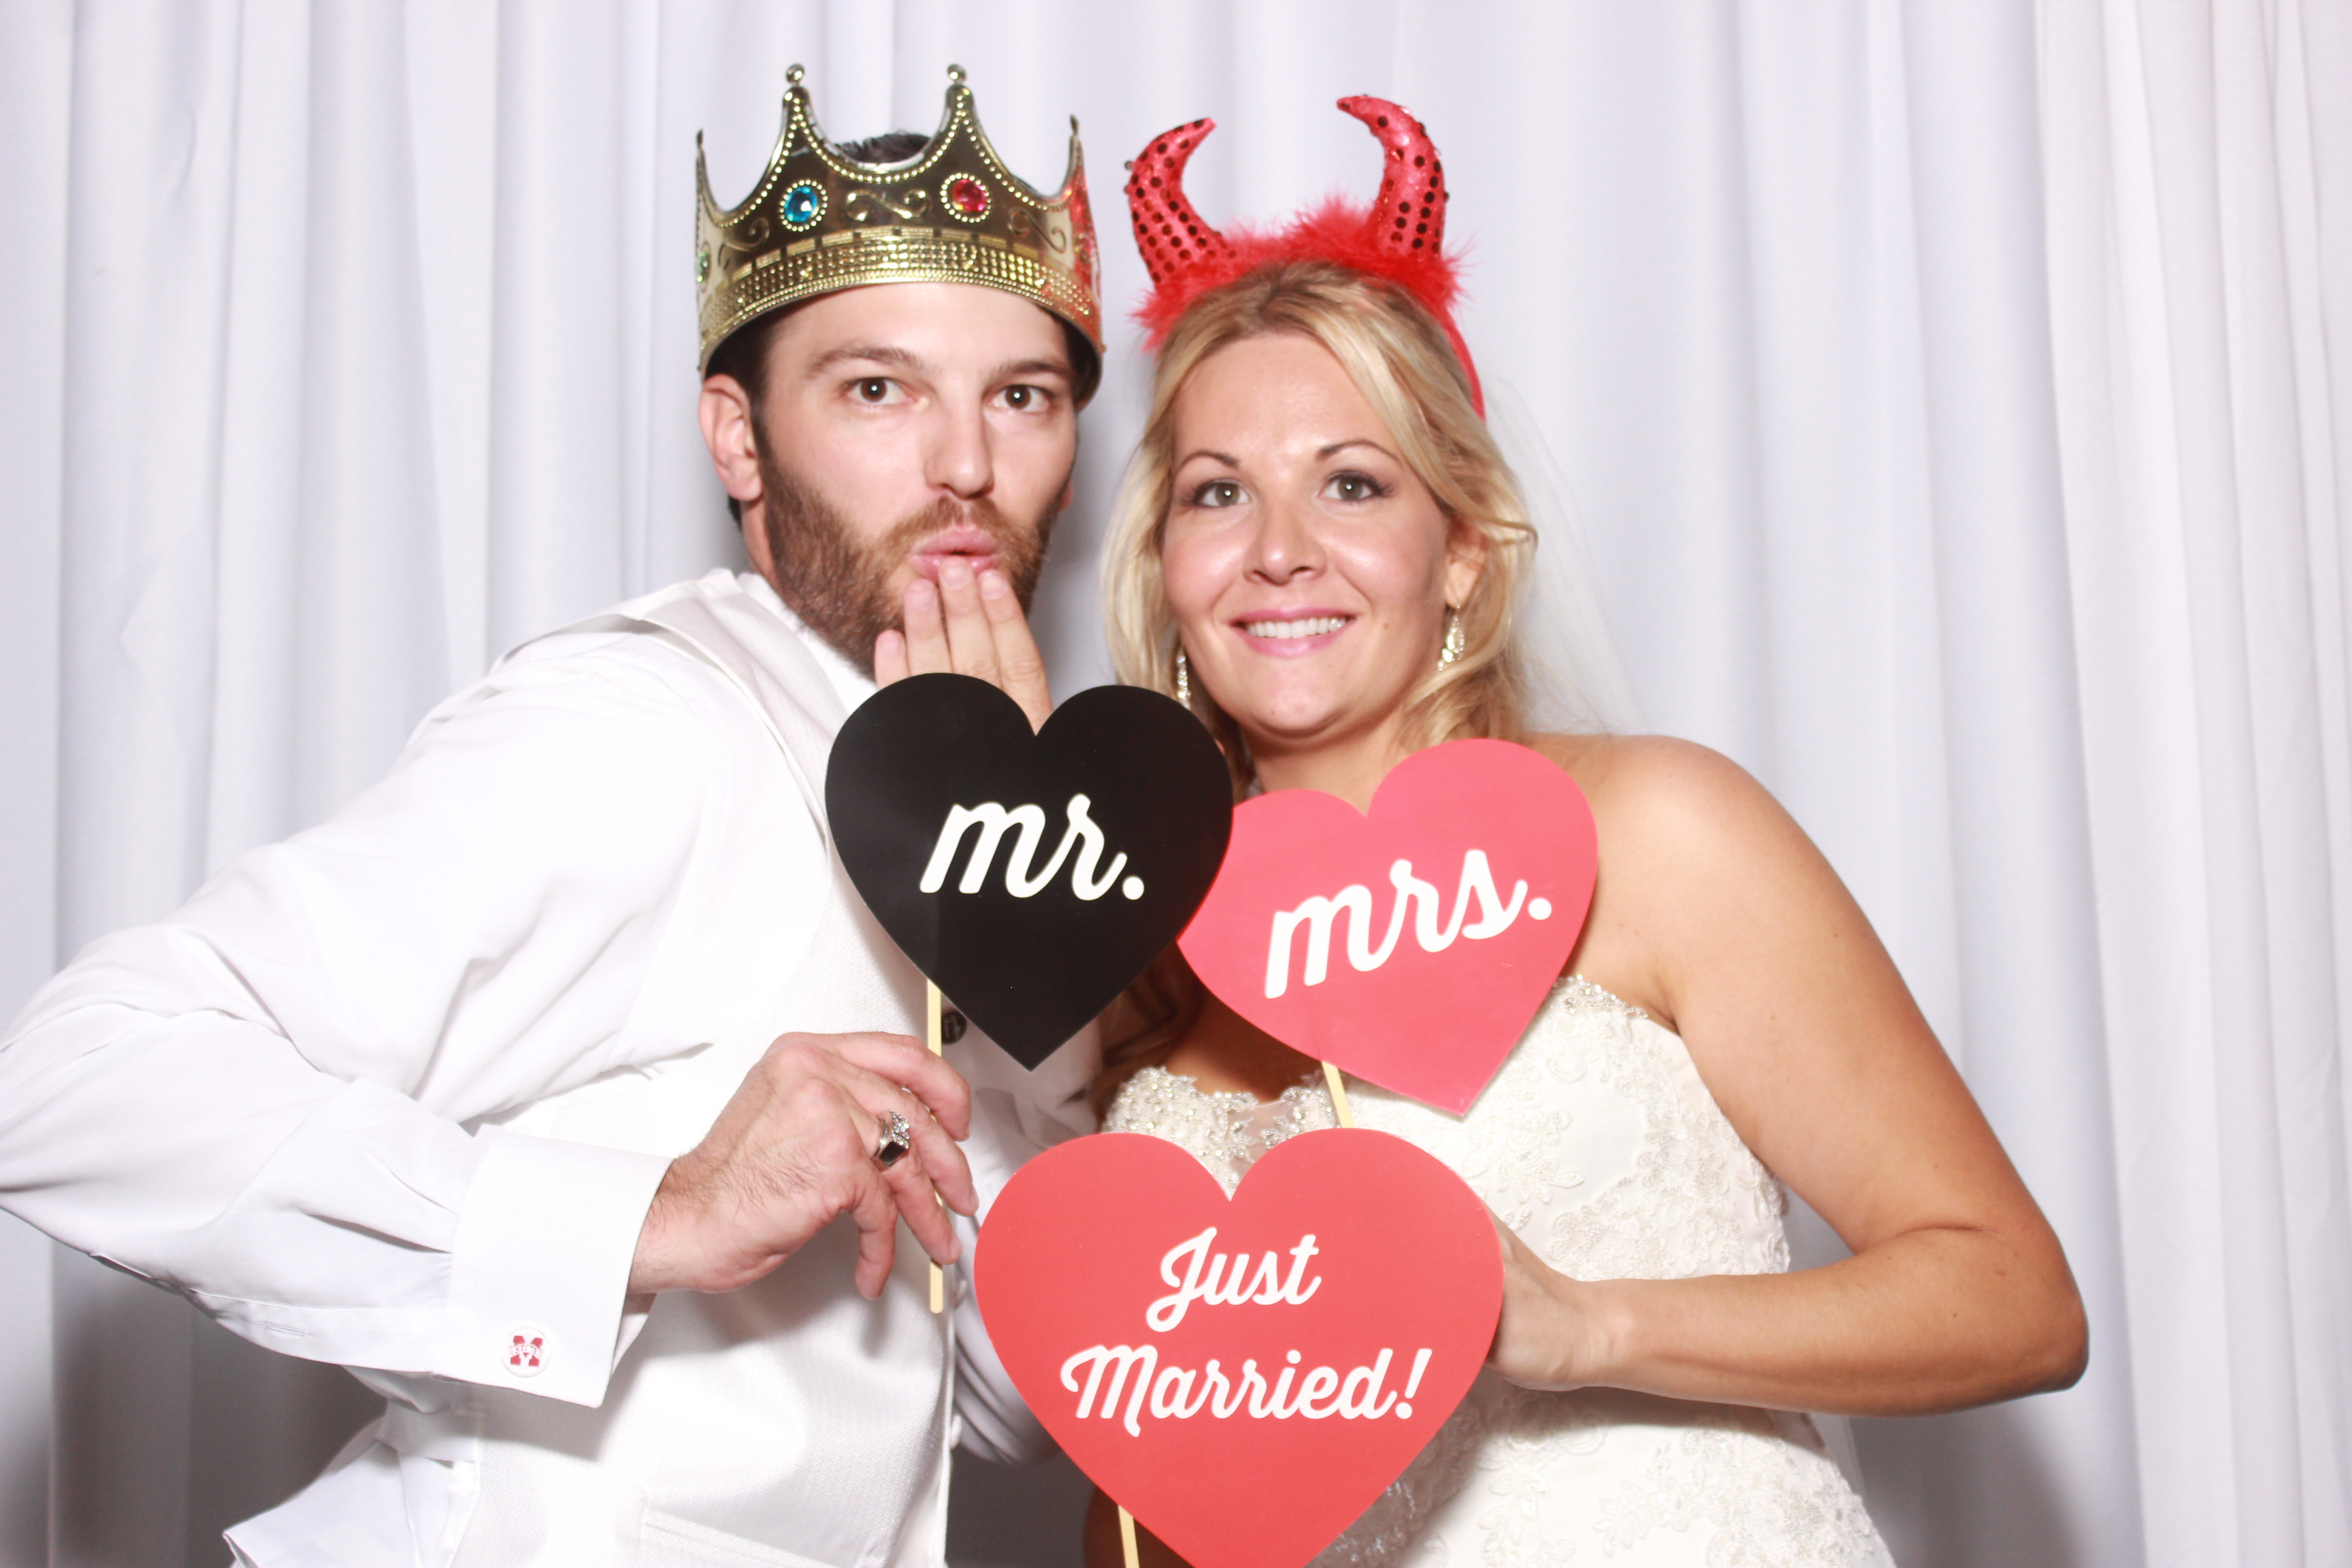 Pensacola Photo Booth wedding fun